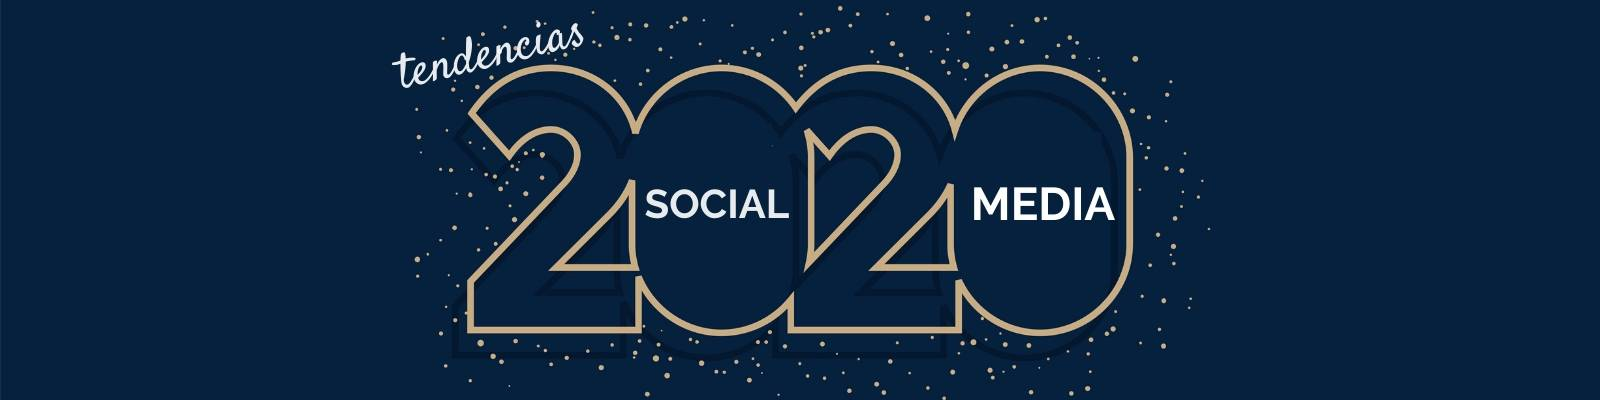 tendencias social media 2020